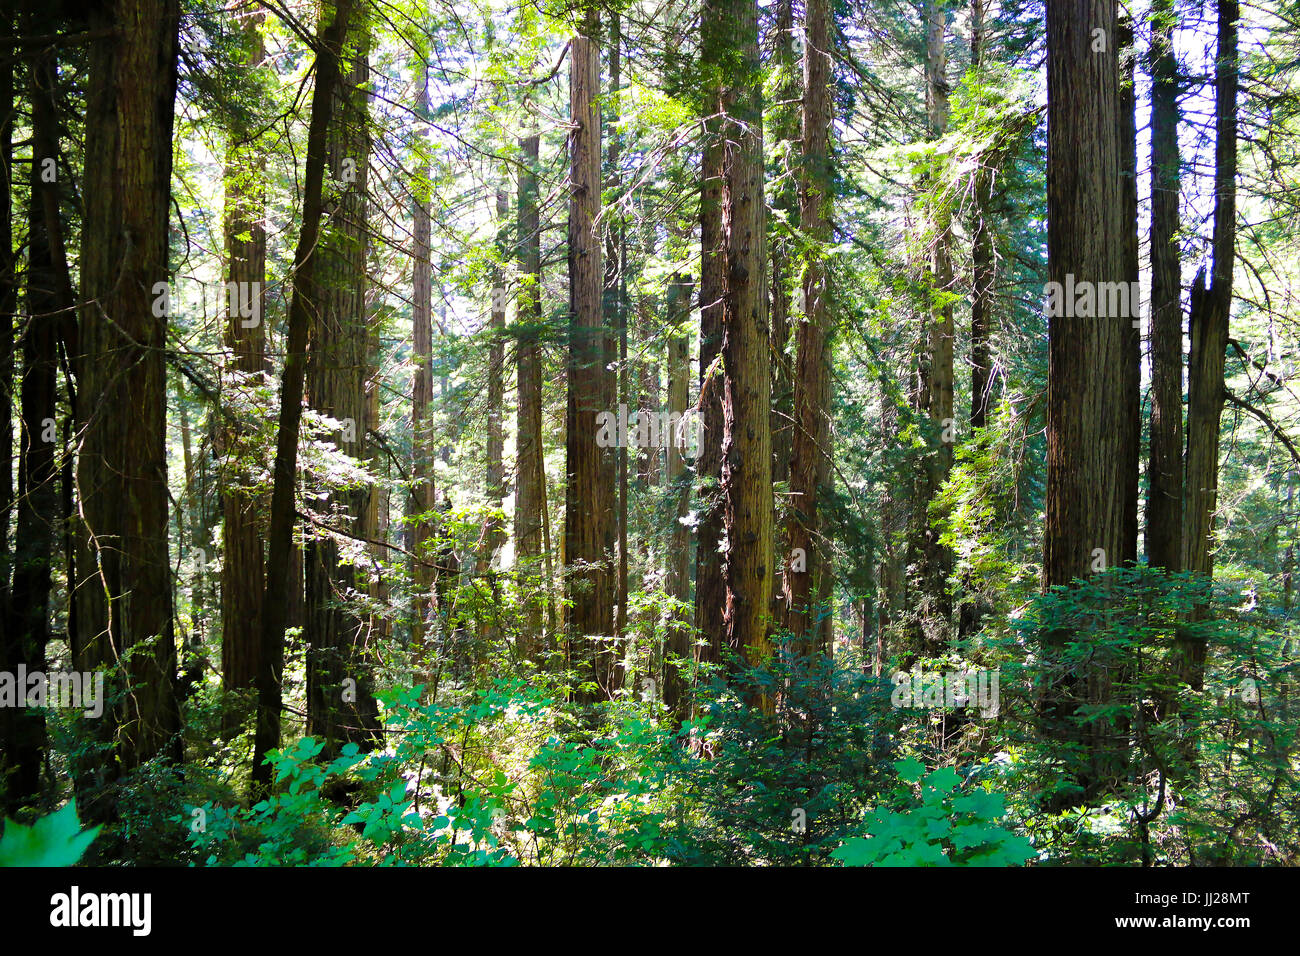 Mighty Redwoods - National Park, CA - Stock Image